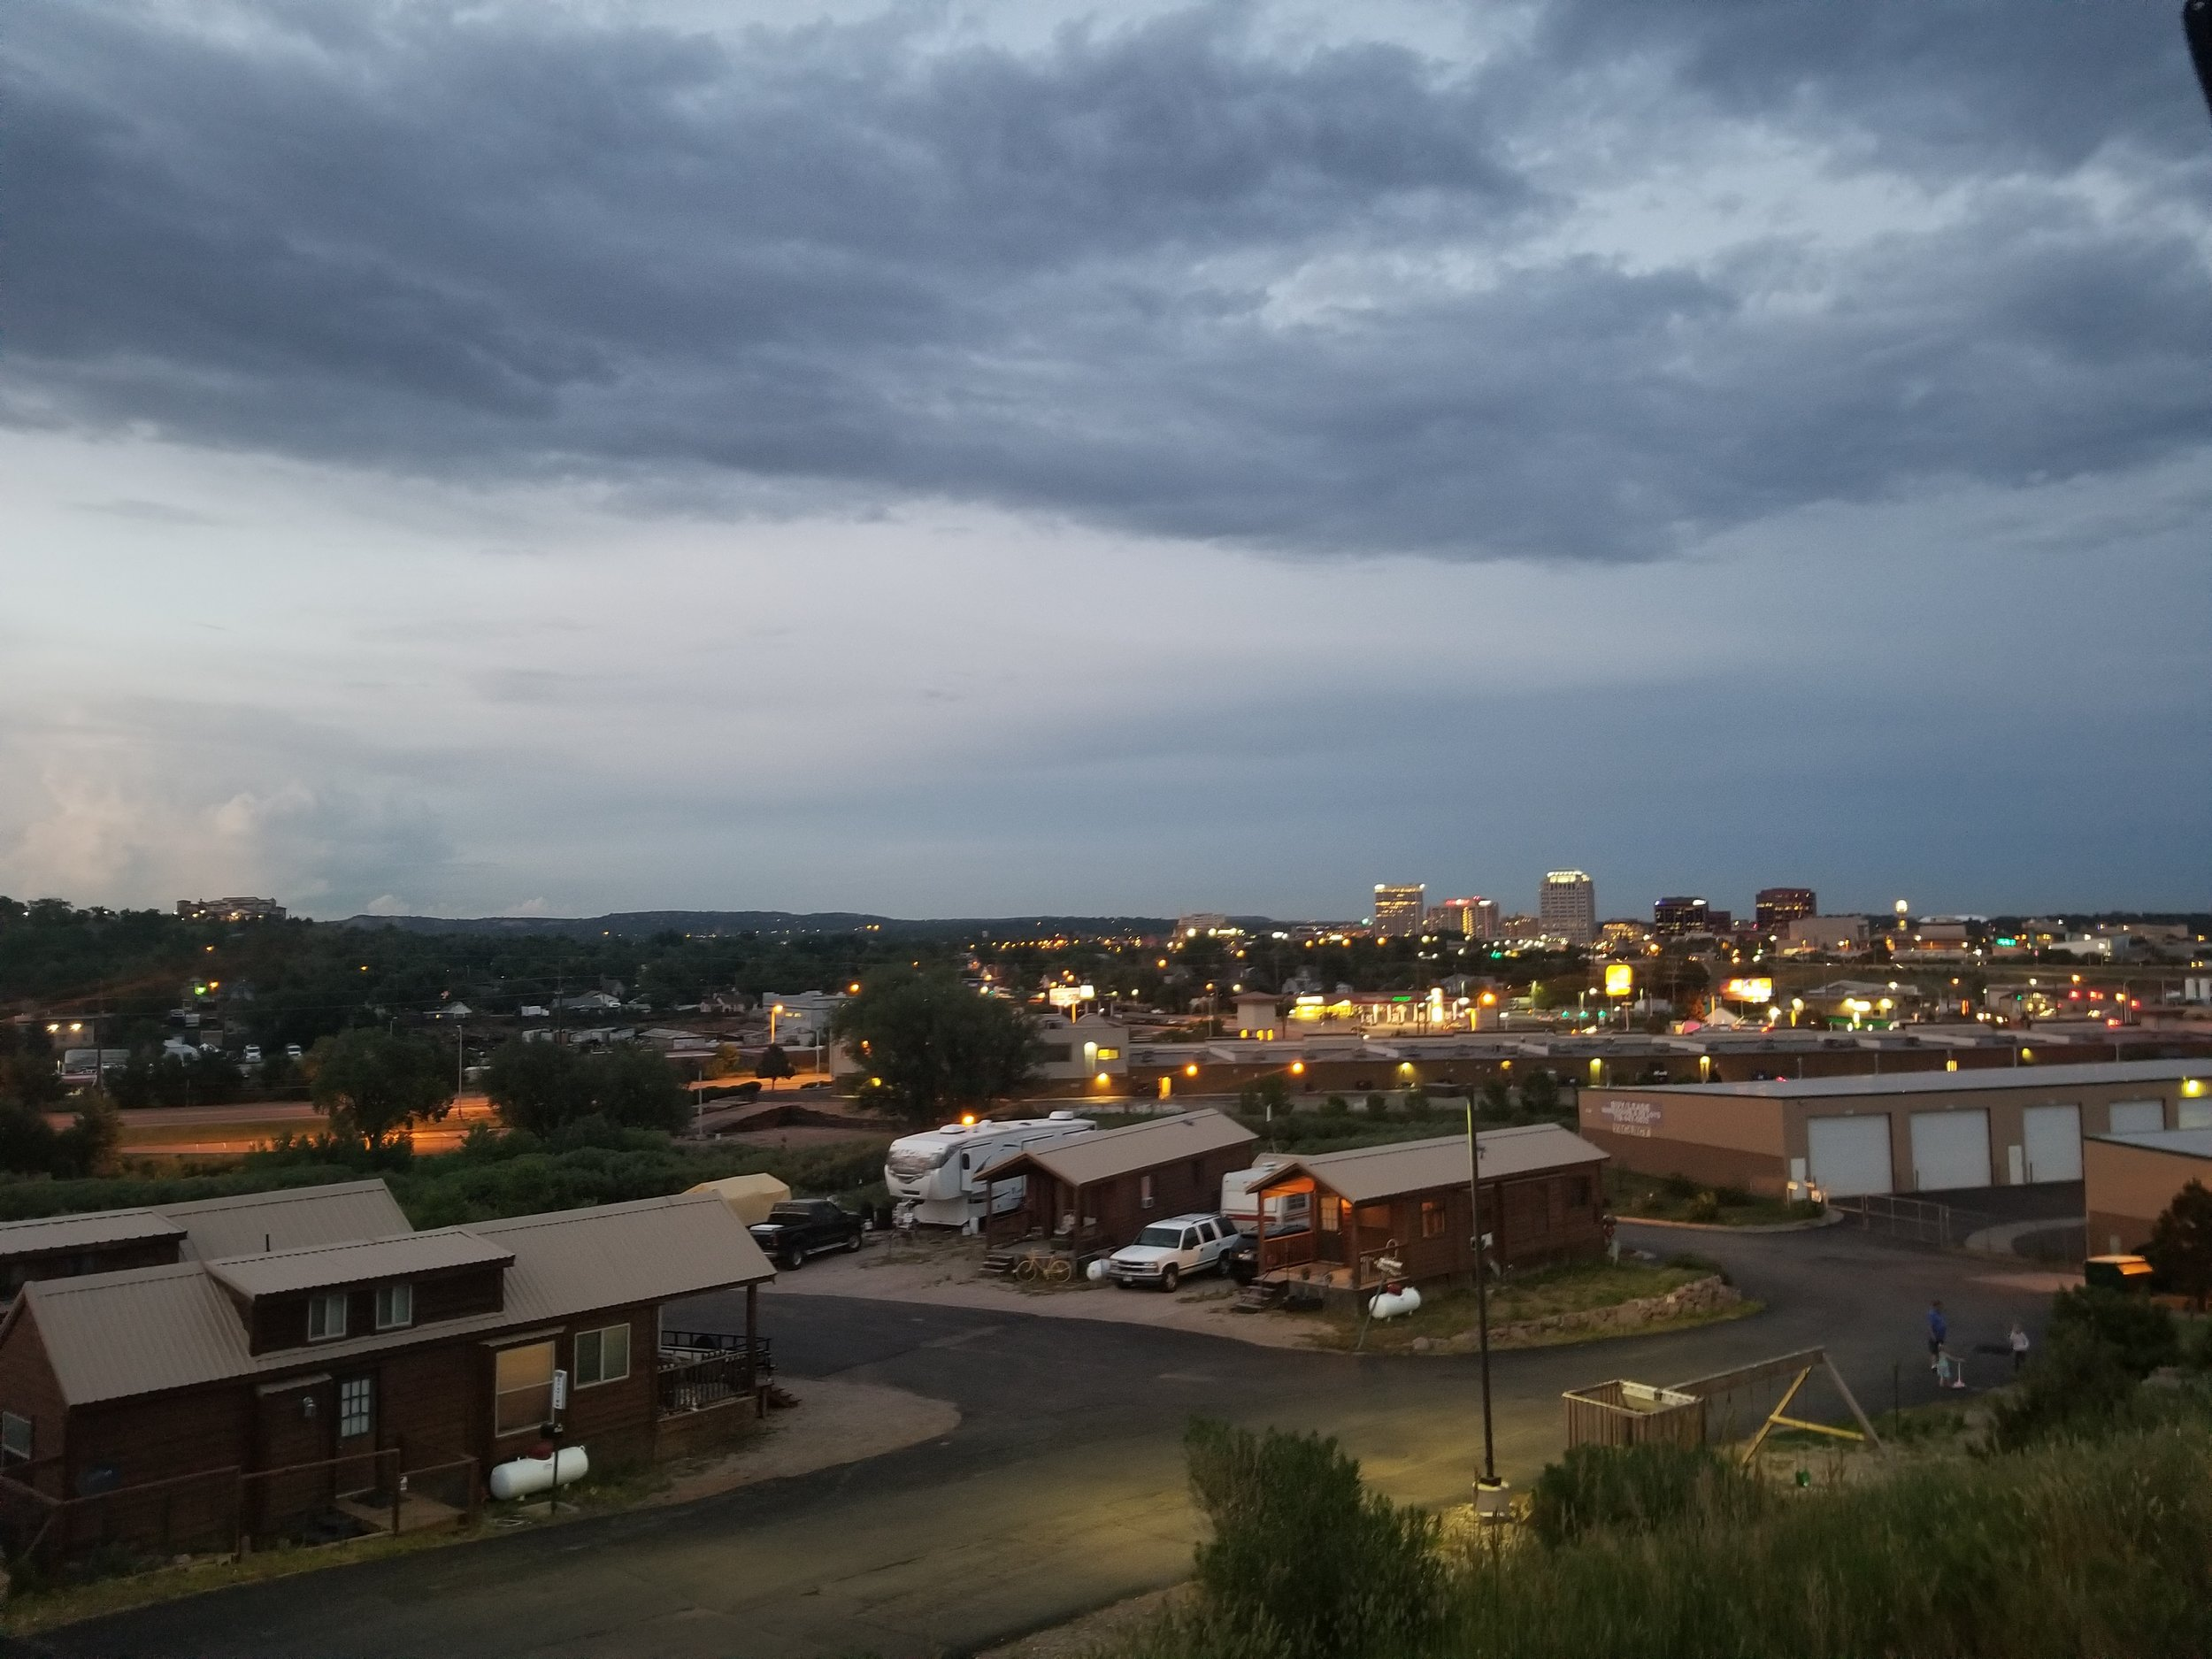 Overlooking the RV park from our spot up high, the city and storm clouds in the background. Video below captured the lightning in the clouds.